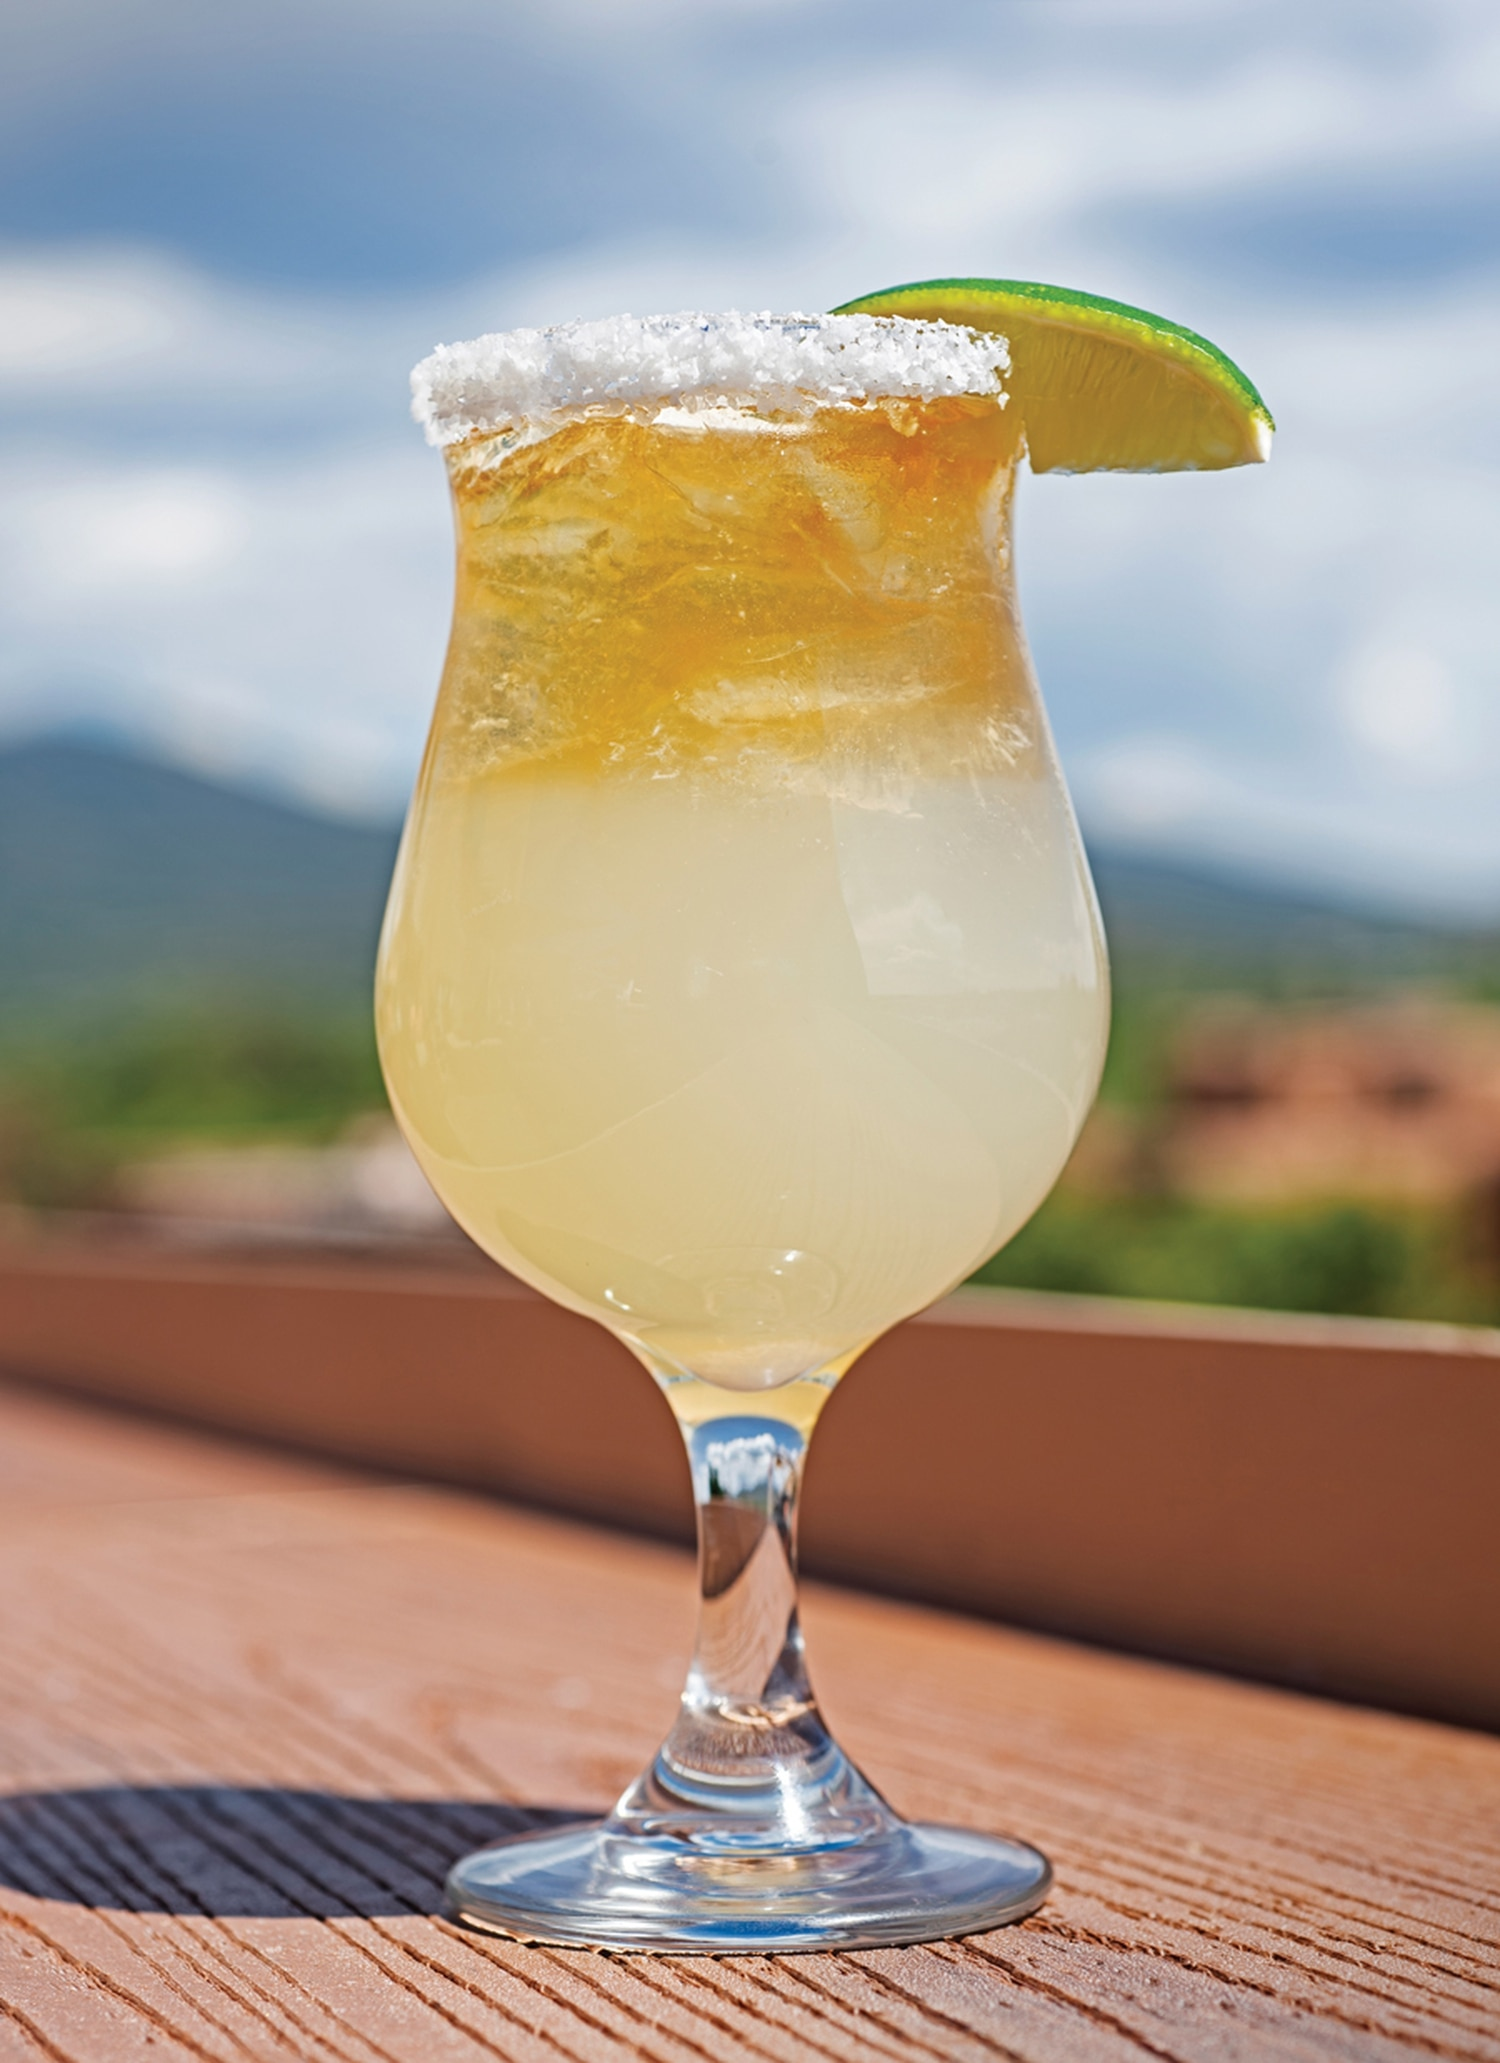 A margarita made with Don Julio Añejo tequila, Cointreau and Courvoisier VS cognac ($15)